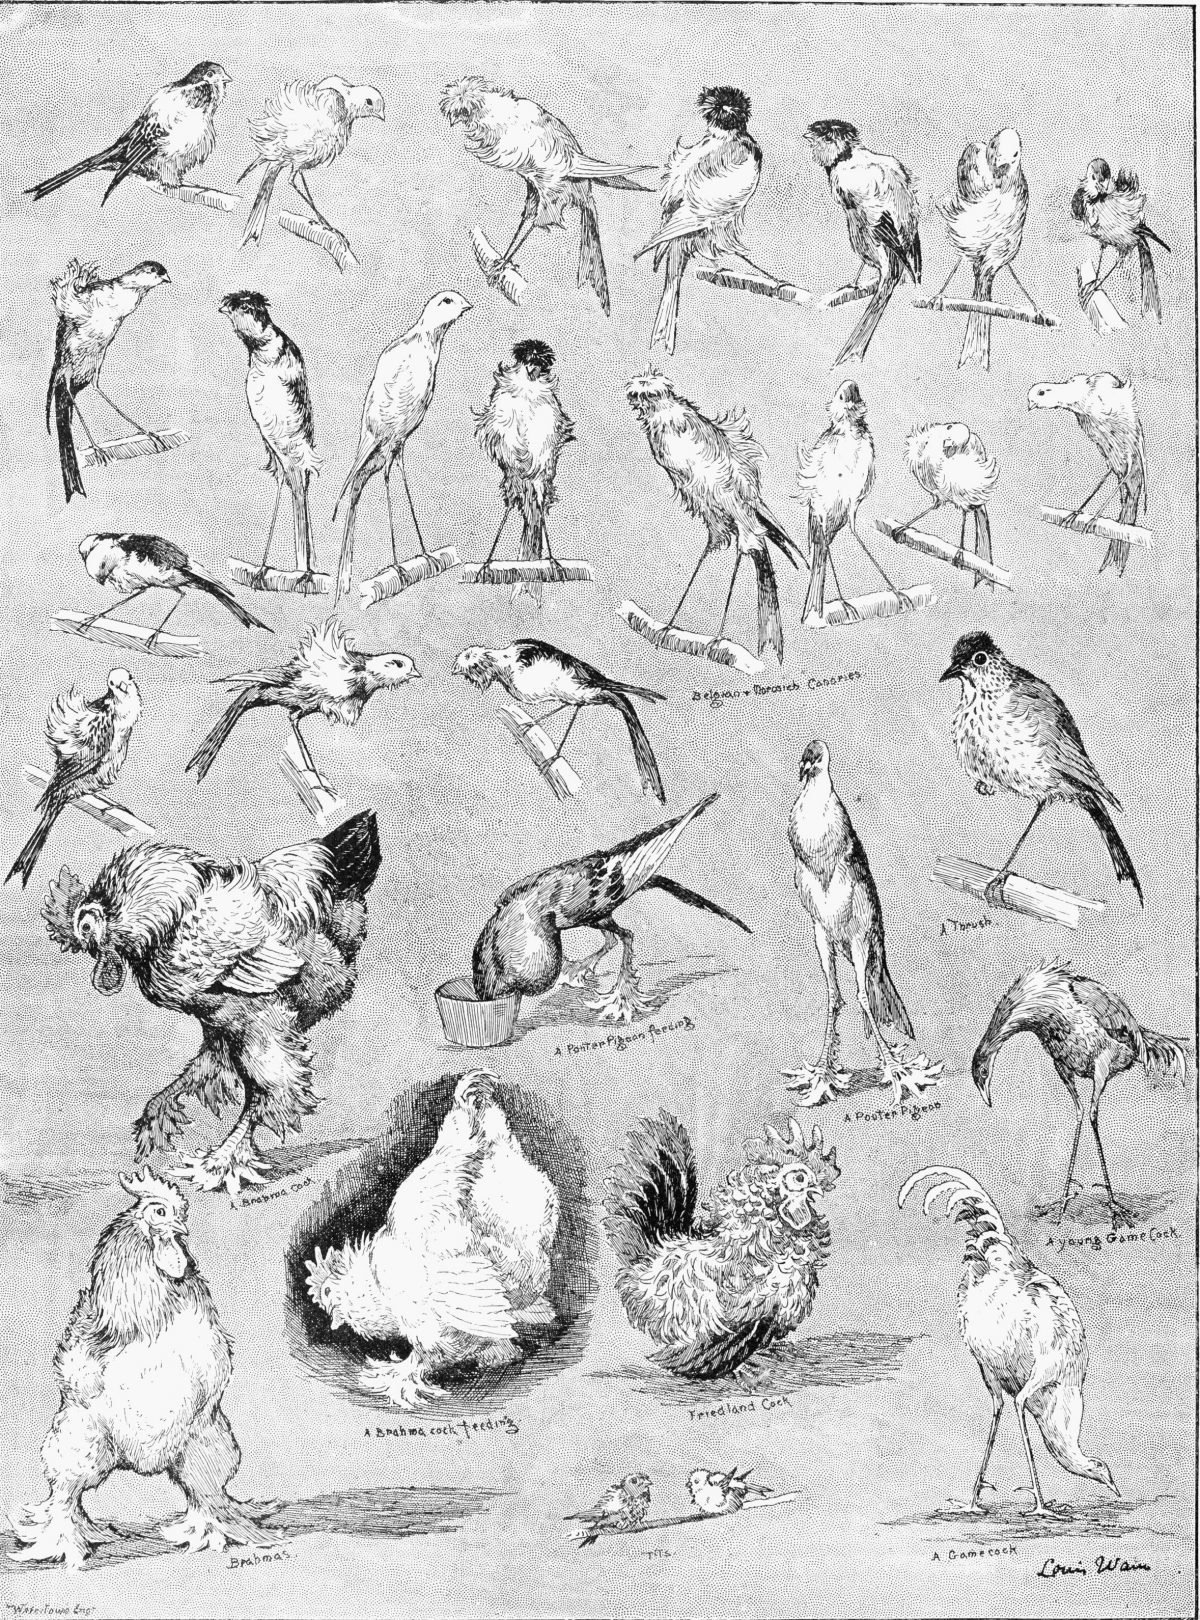 Ornithology, 1889. 'Nature'S Fitful Moments. Sketches At The National Poultry Show, Crystal Palace, And The London Ornithological Society'S Show.' Engraving After Drawings By Louis Wain, English, 1889. Ornithology, 1889.